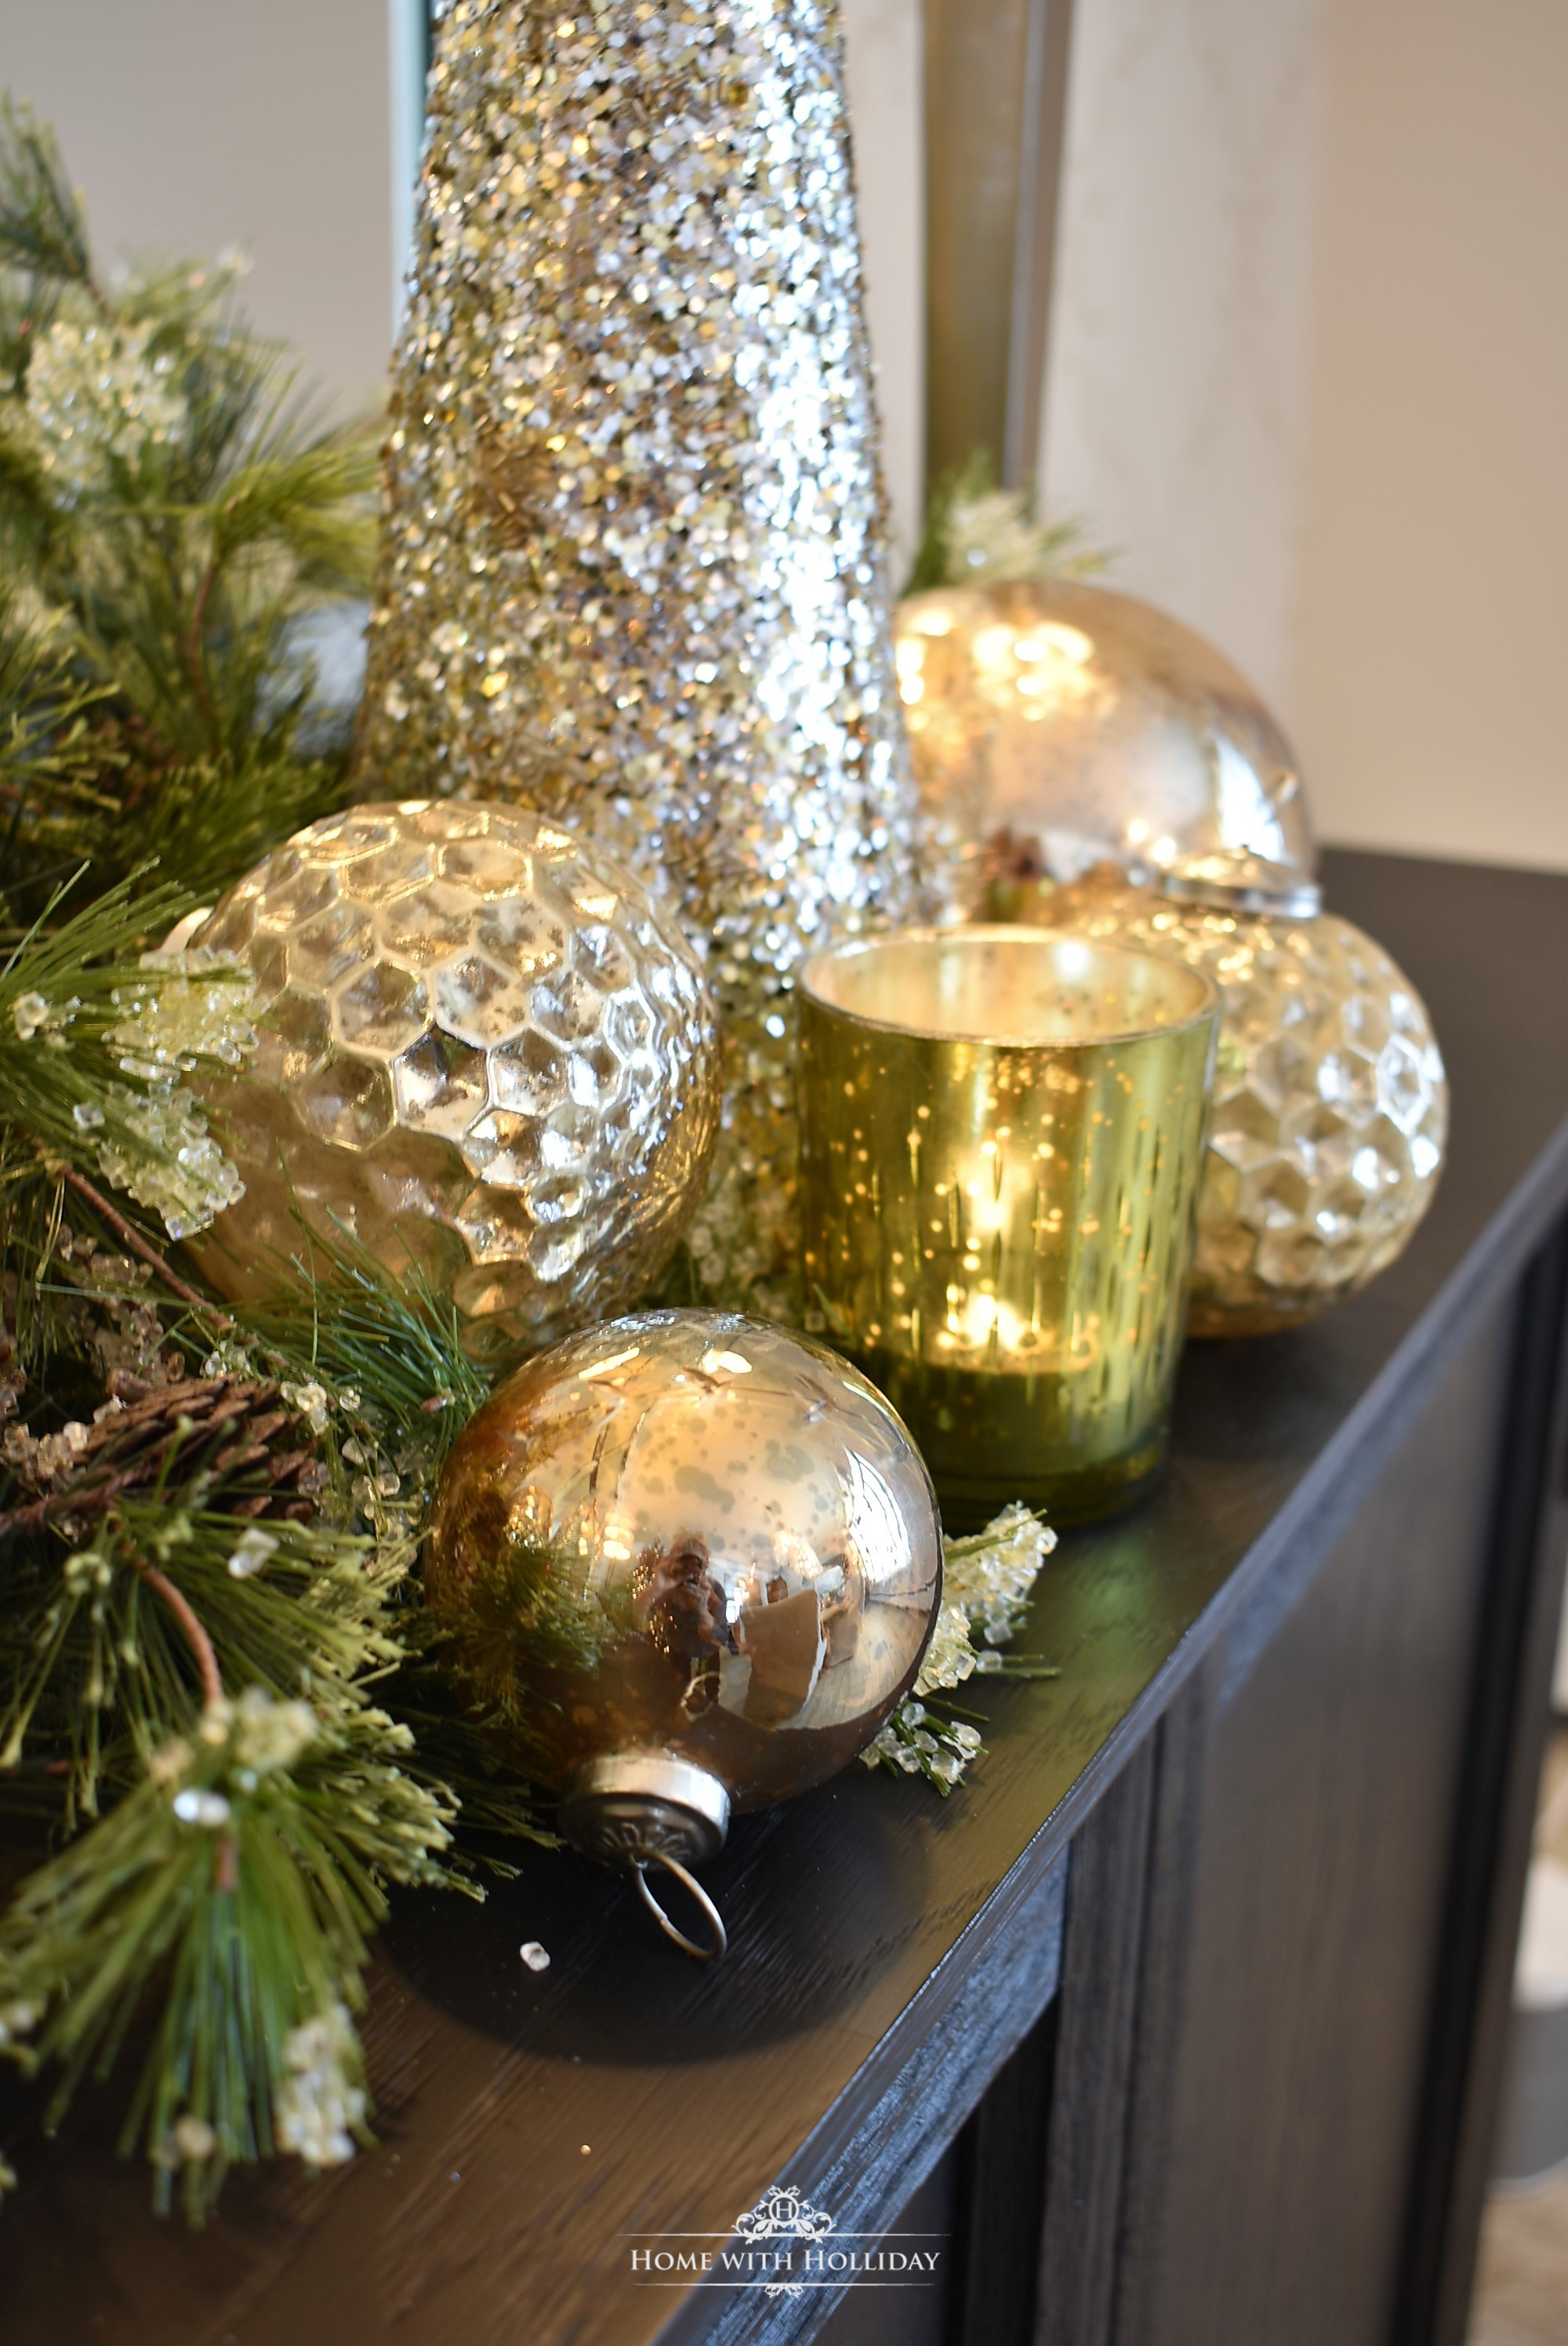 Silver and Gold Glam Christmas Vignette with gold ornament balls and greenery